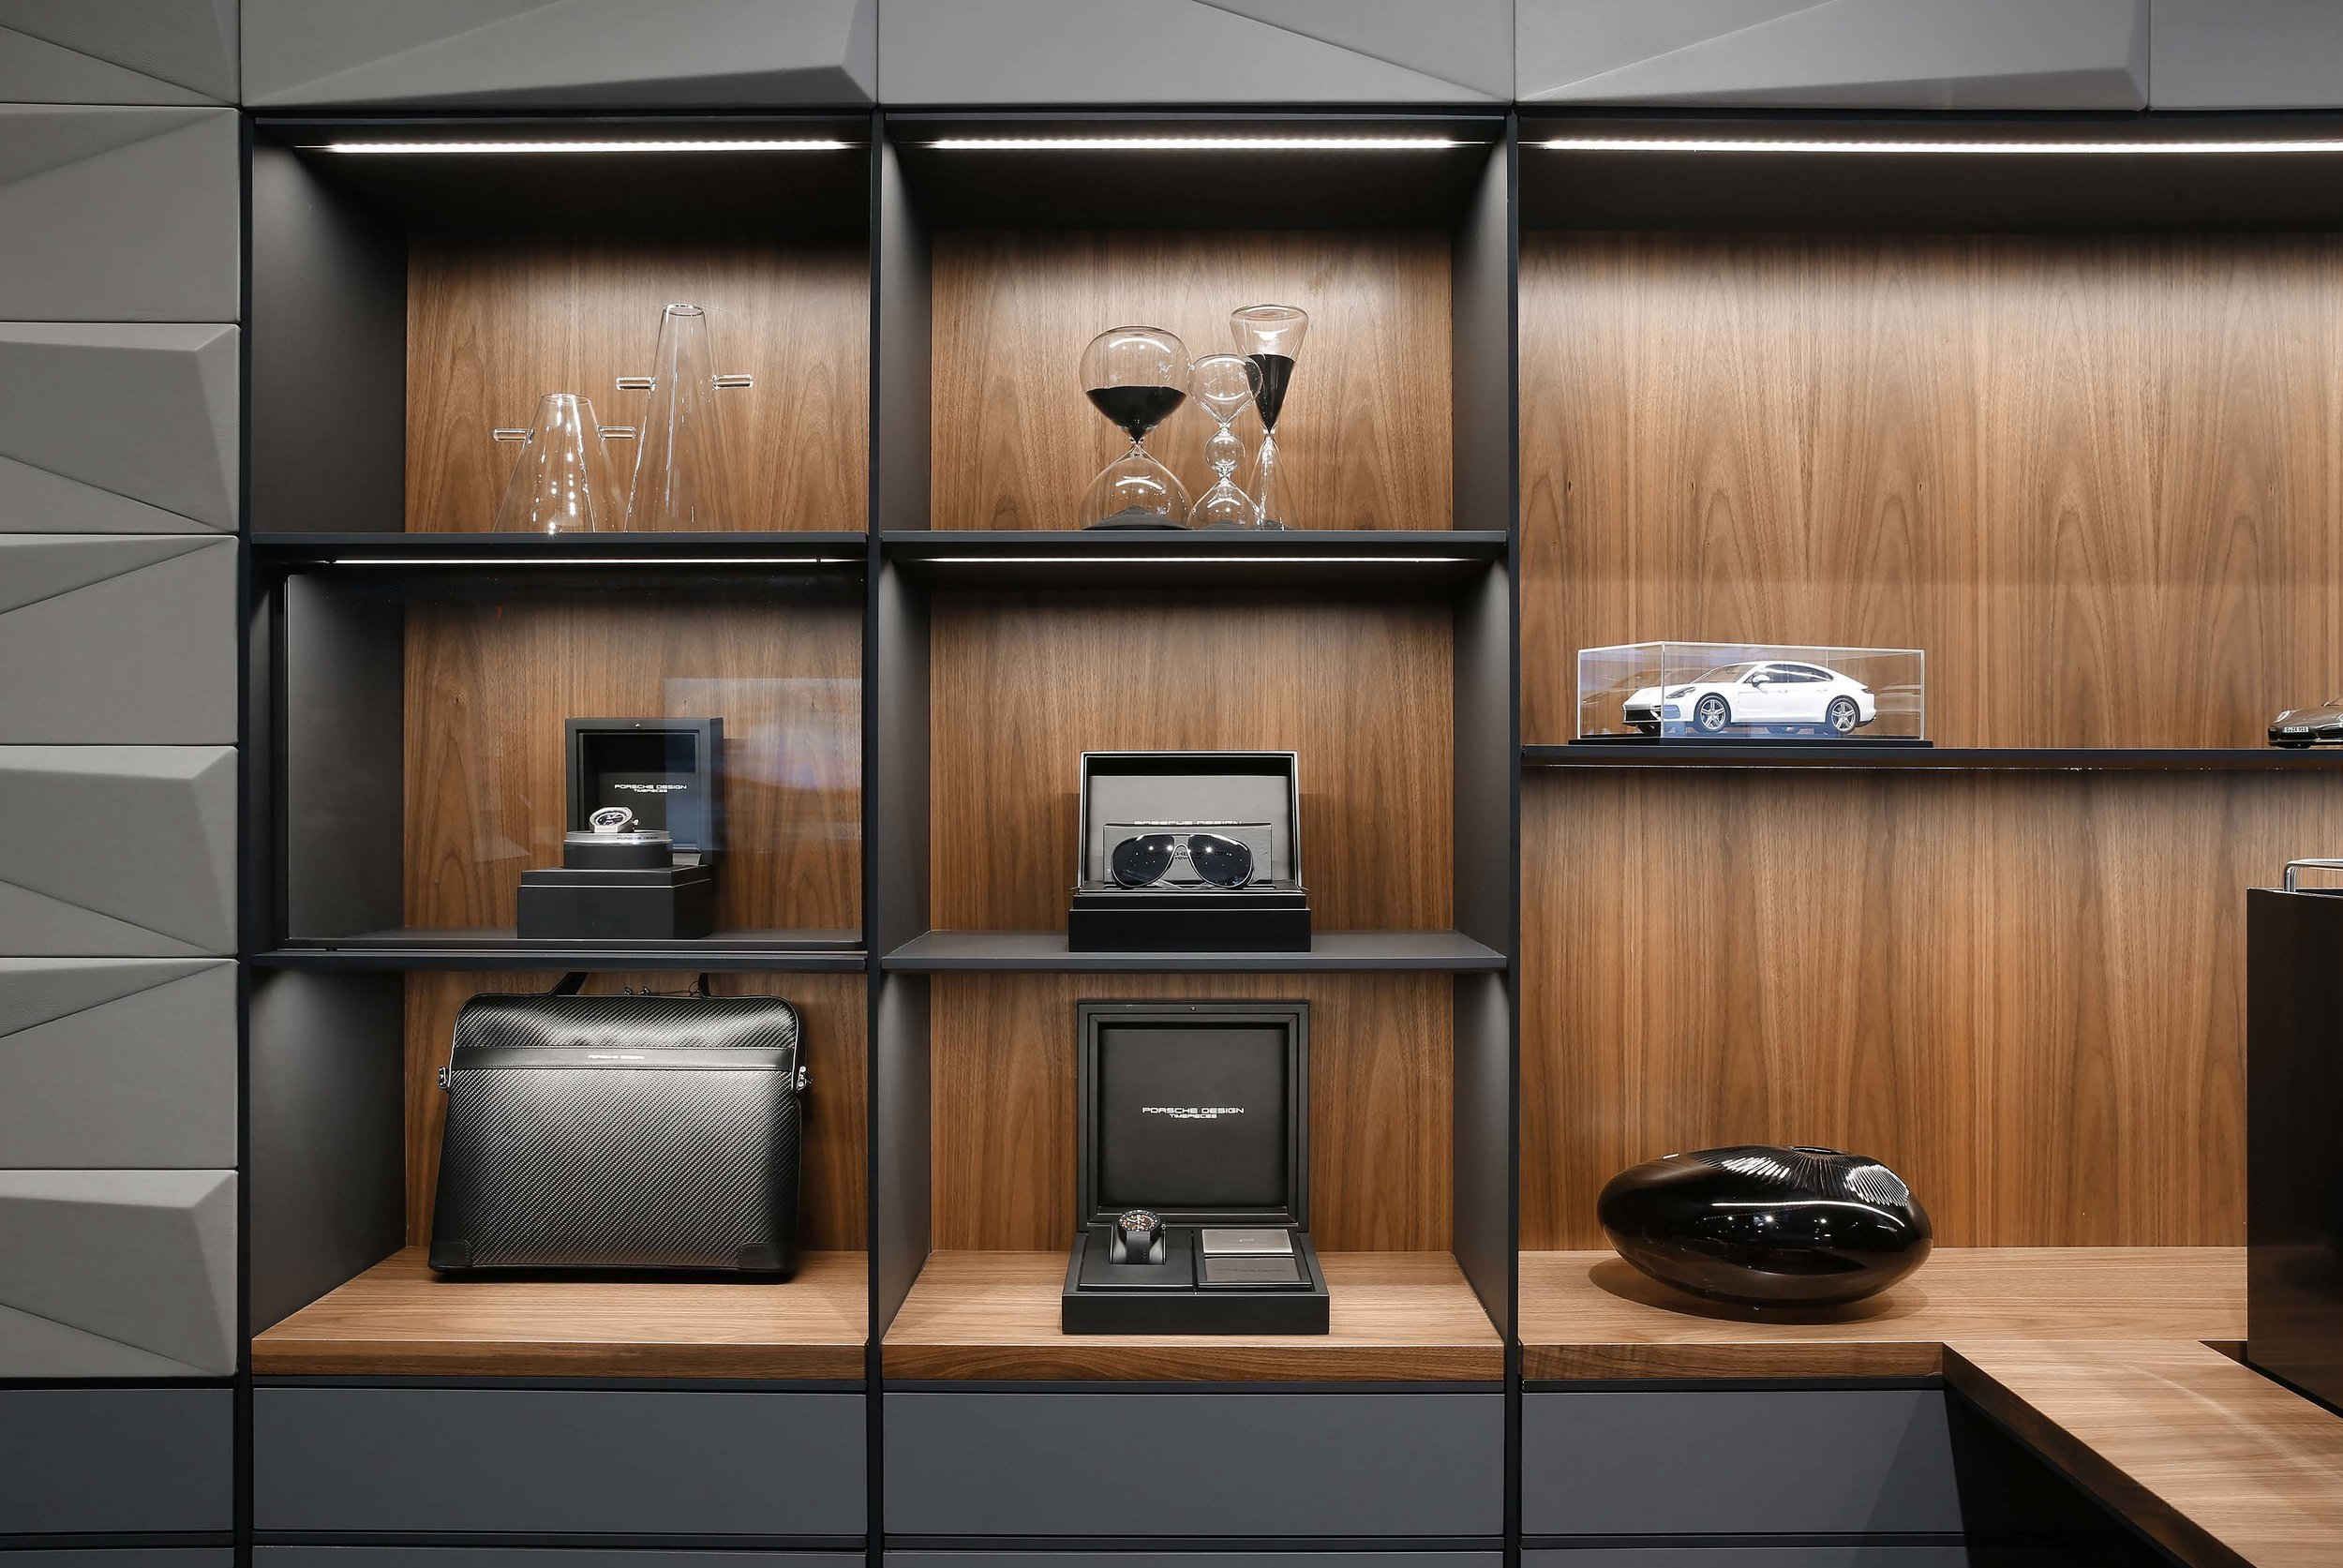 porsche-studio_retail-interior-design_coordination-berlin_16.jpg